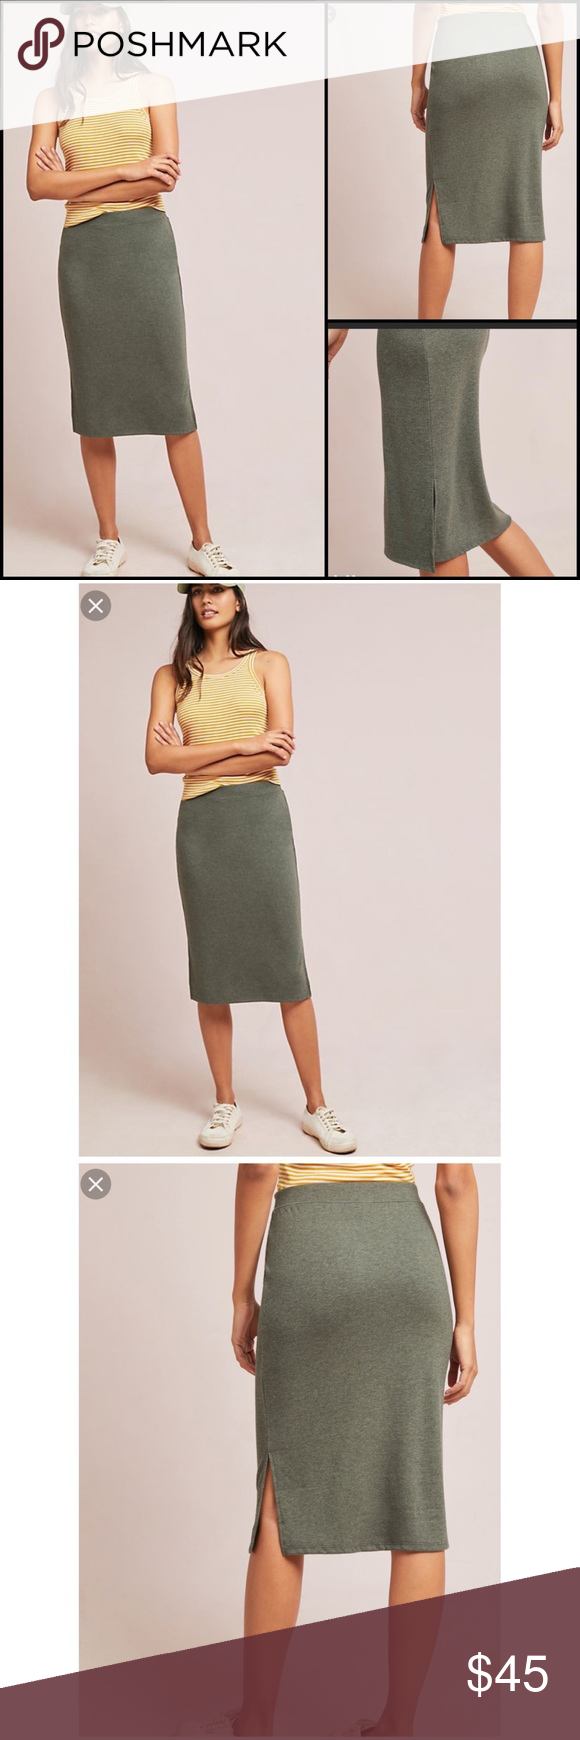 413cc6320184 Anthropologie Naomi Knit Pencil Skirt Small NWT BNWT brand new with tags  rating Polyester, rayon, spandex Pull on styling Machine ...